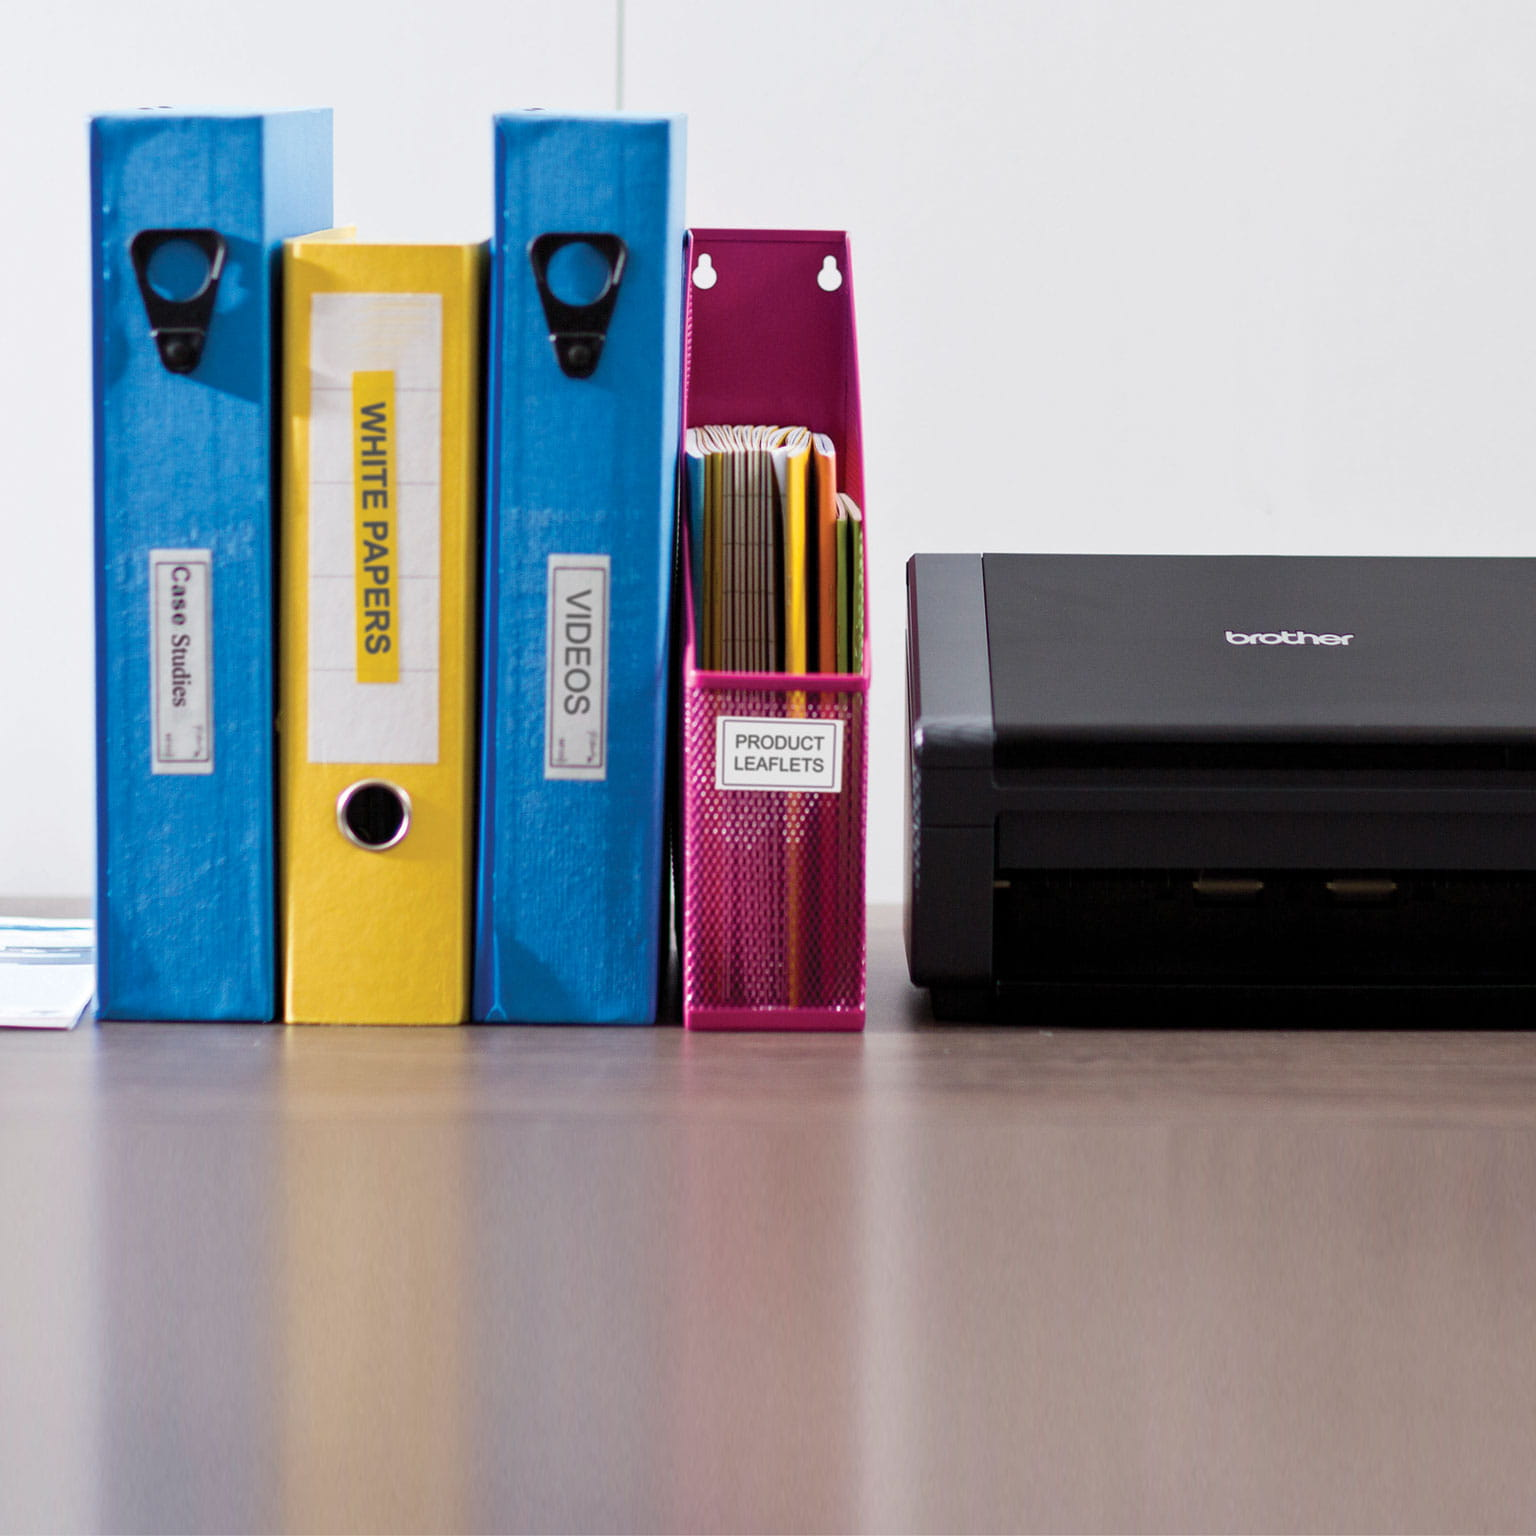 4 different colours folders standing next to a black brother printer